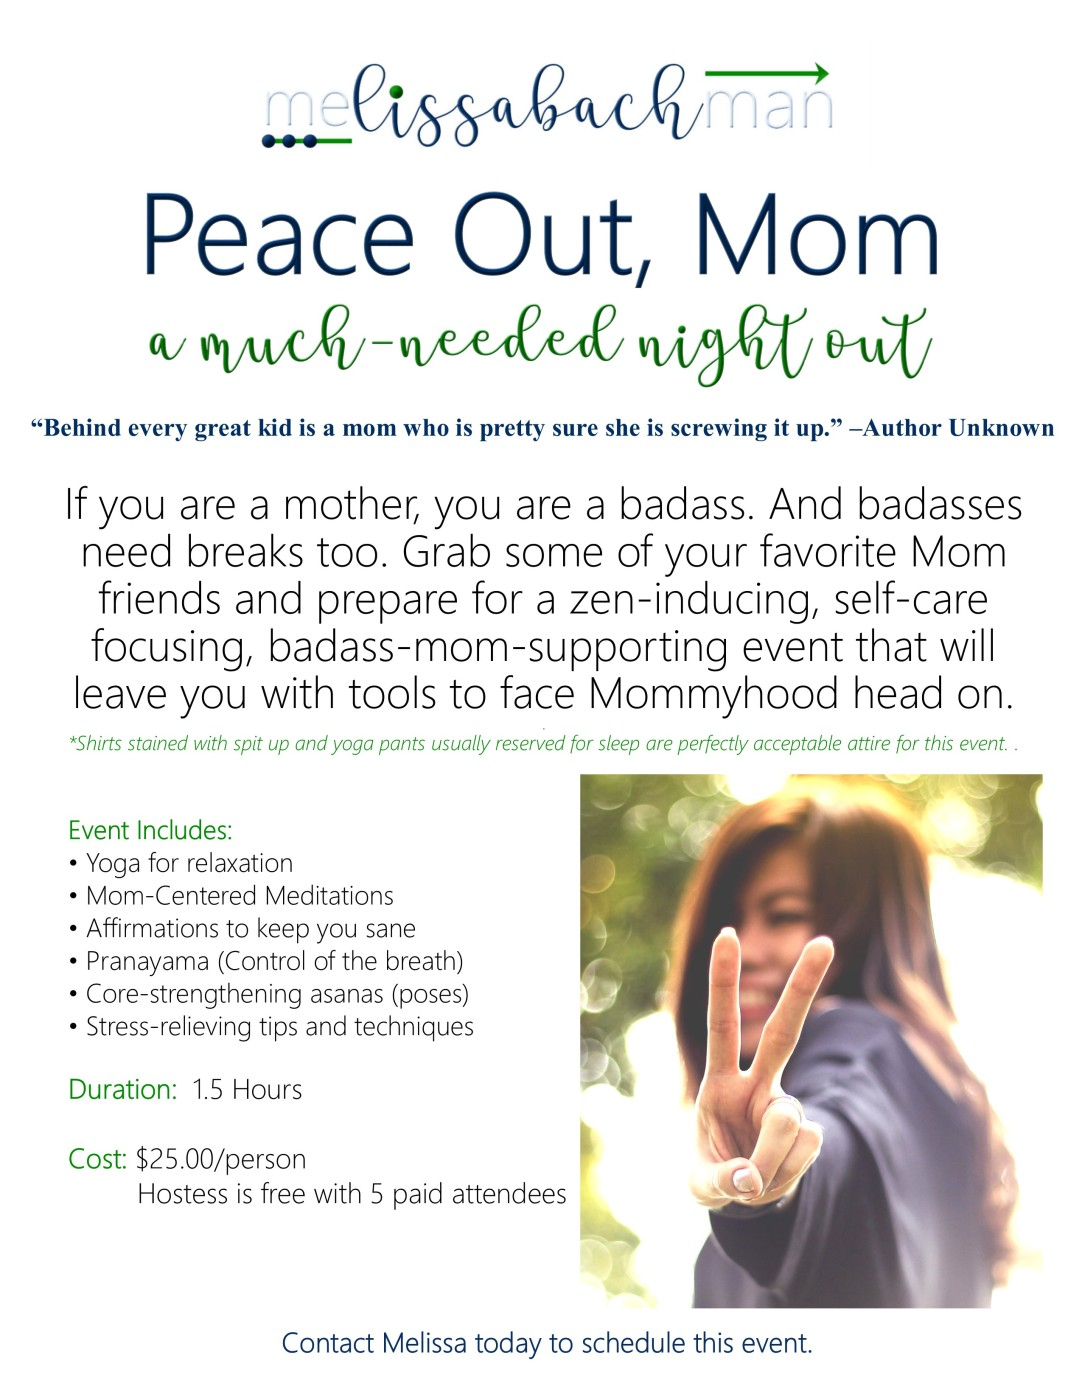 Peace Out, Mom Event Flyer WEBSITE